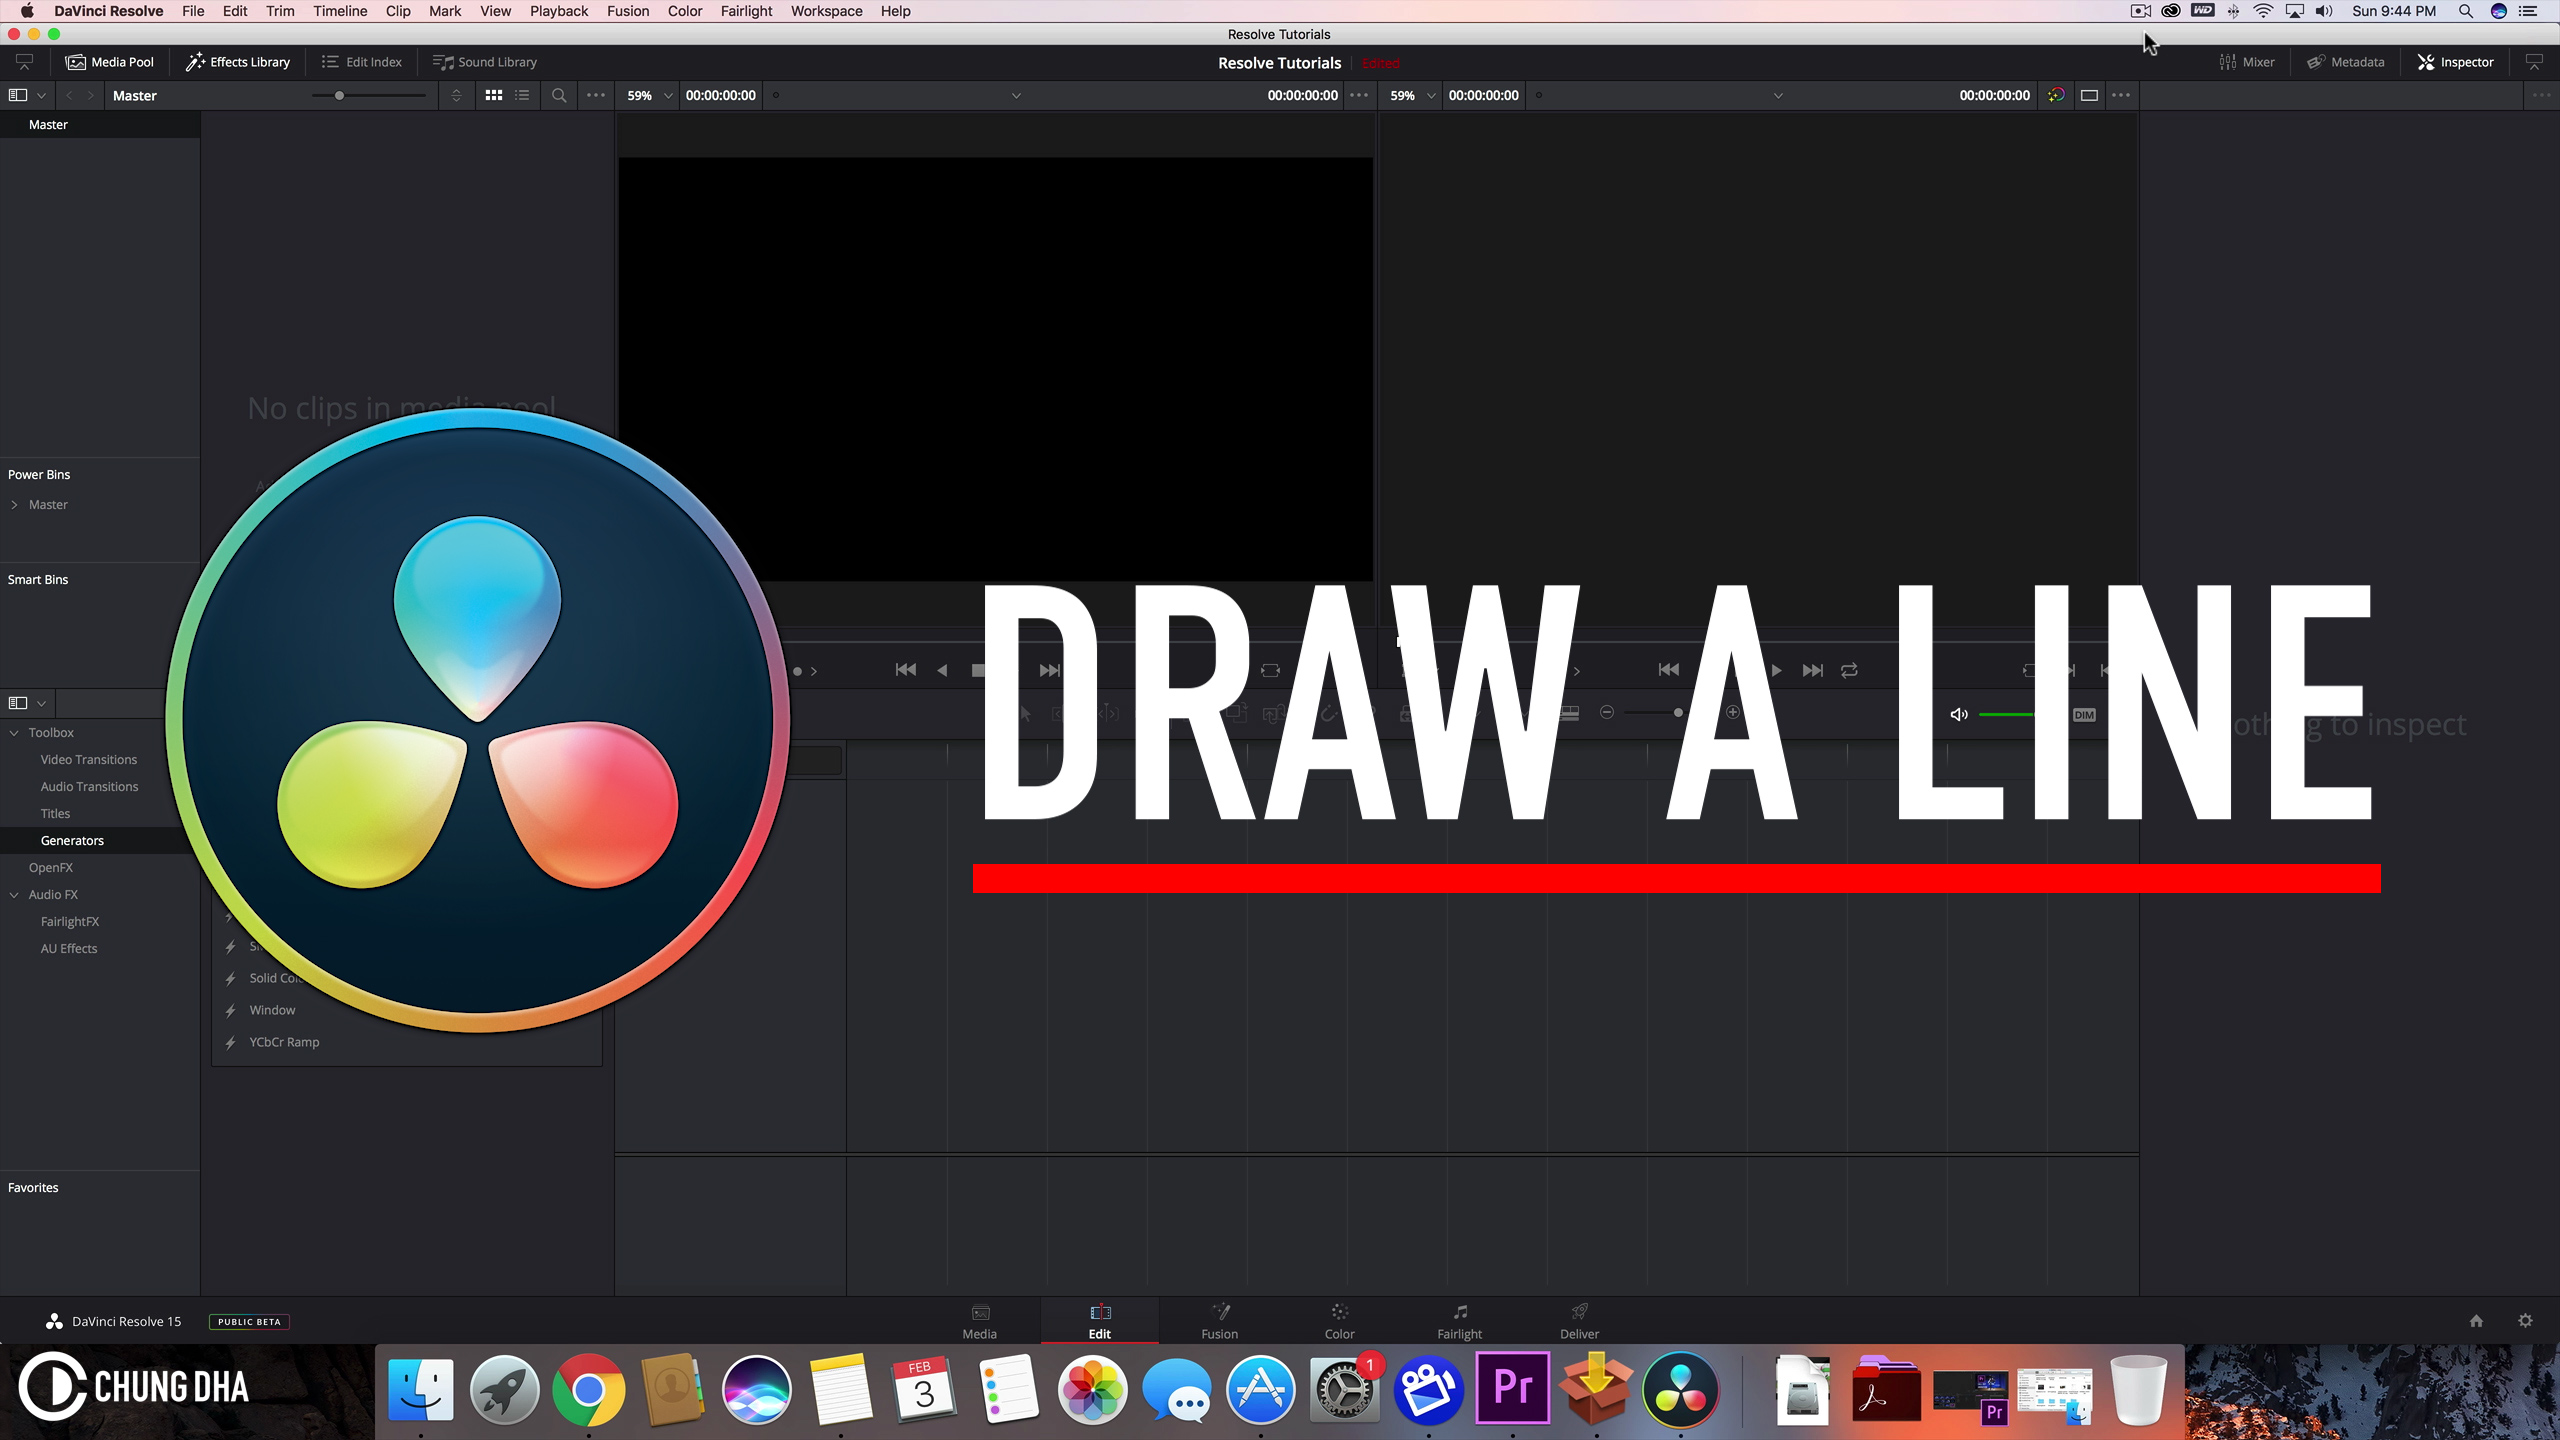 Draw a line in Davinci Resolve 15